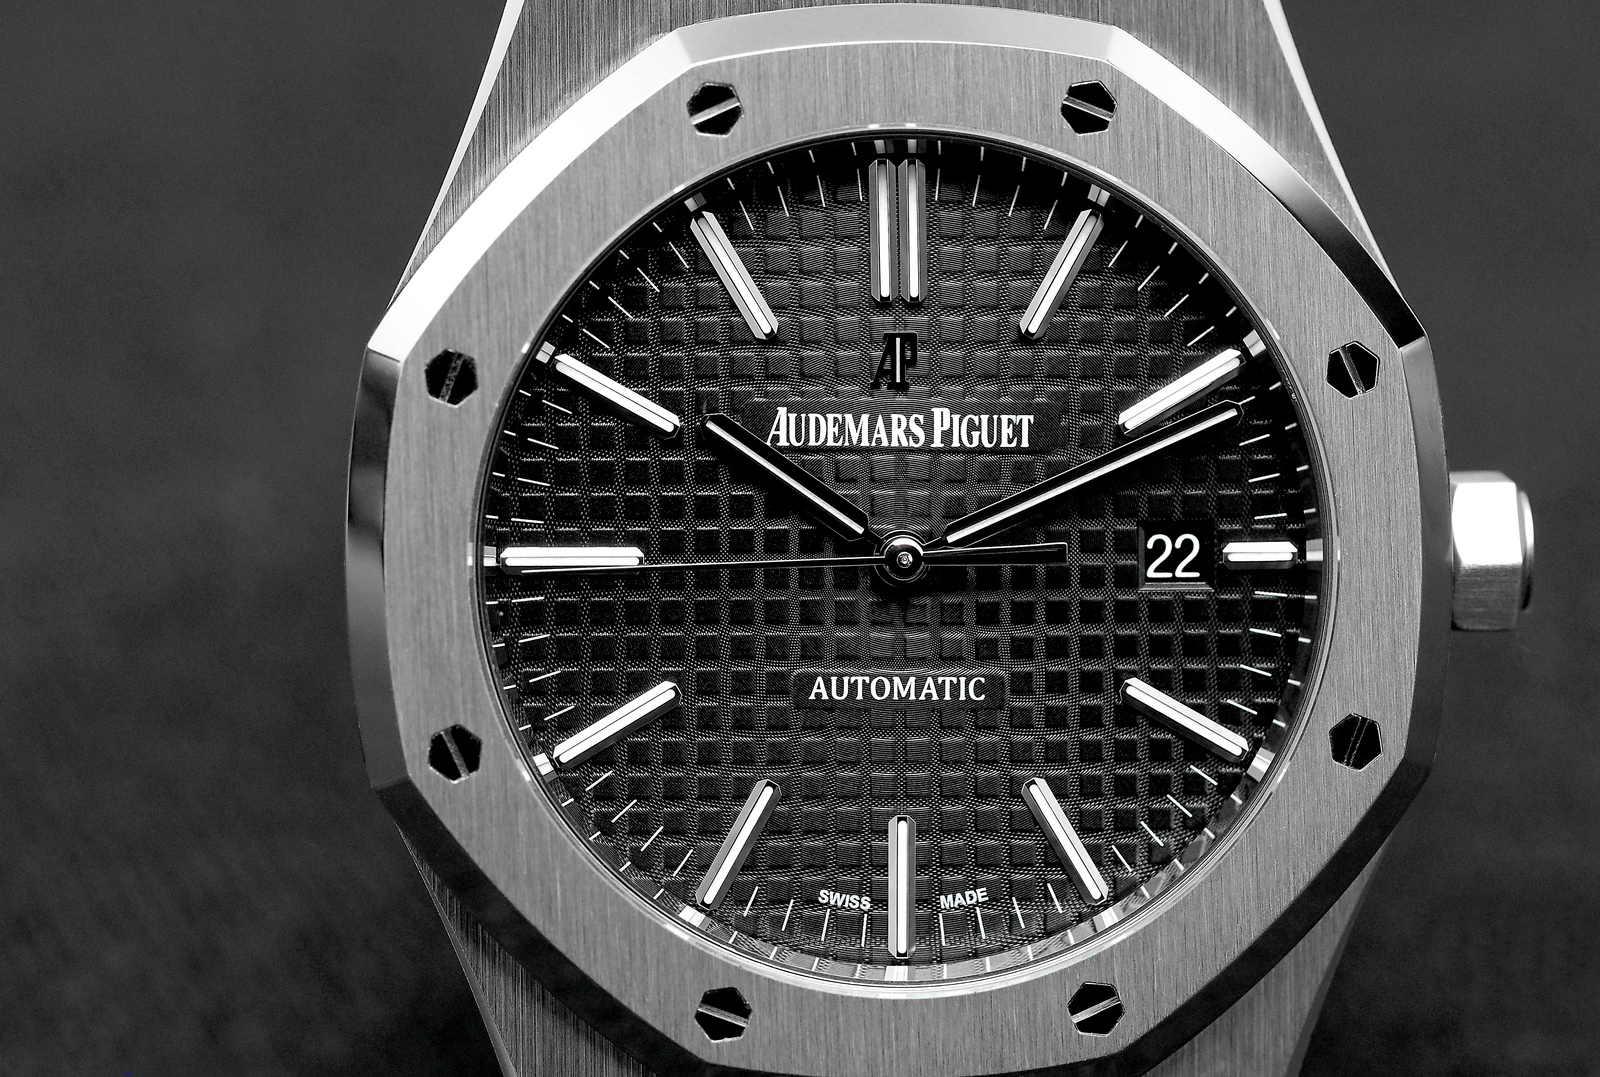 Audemars Piguet Royal Oak Replica Watches 01